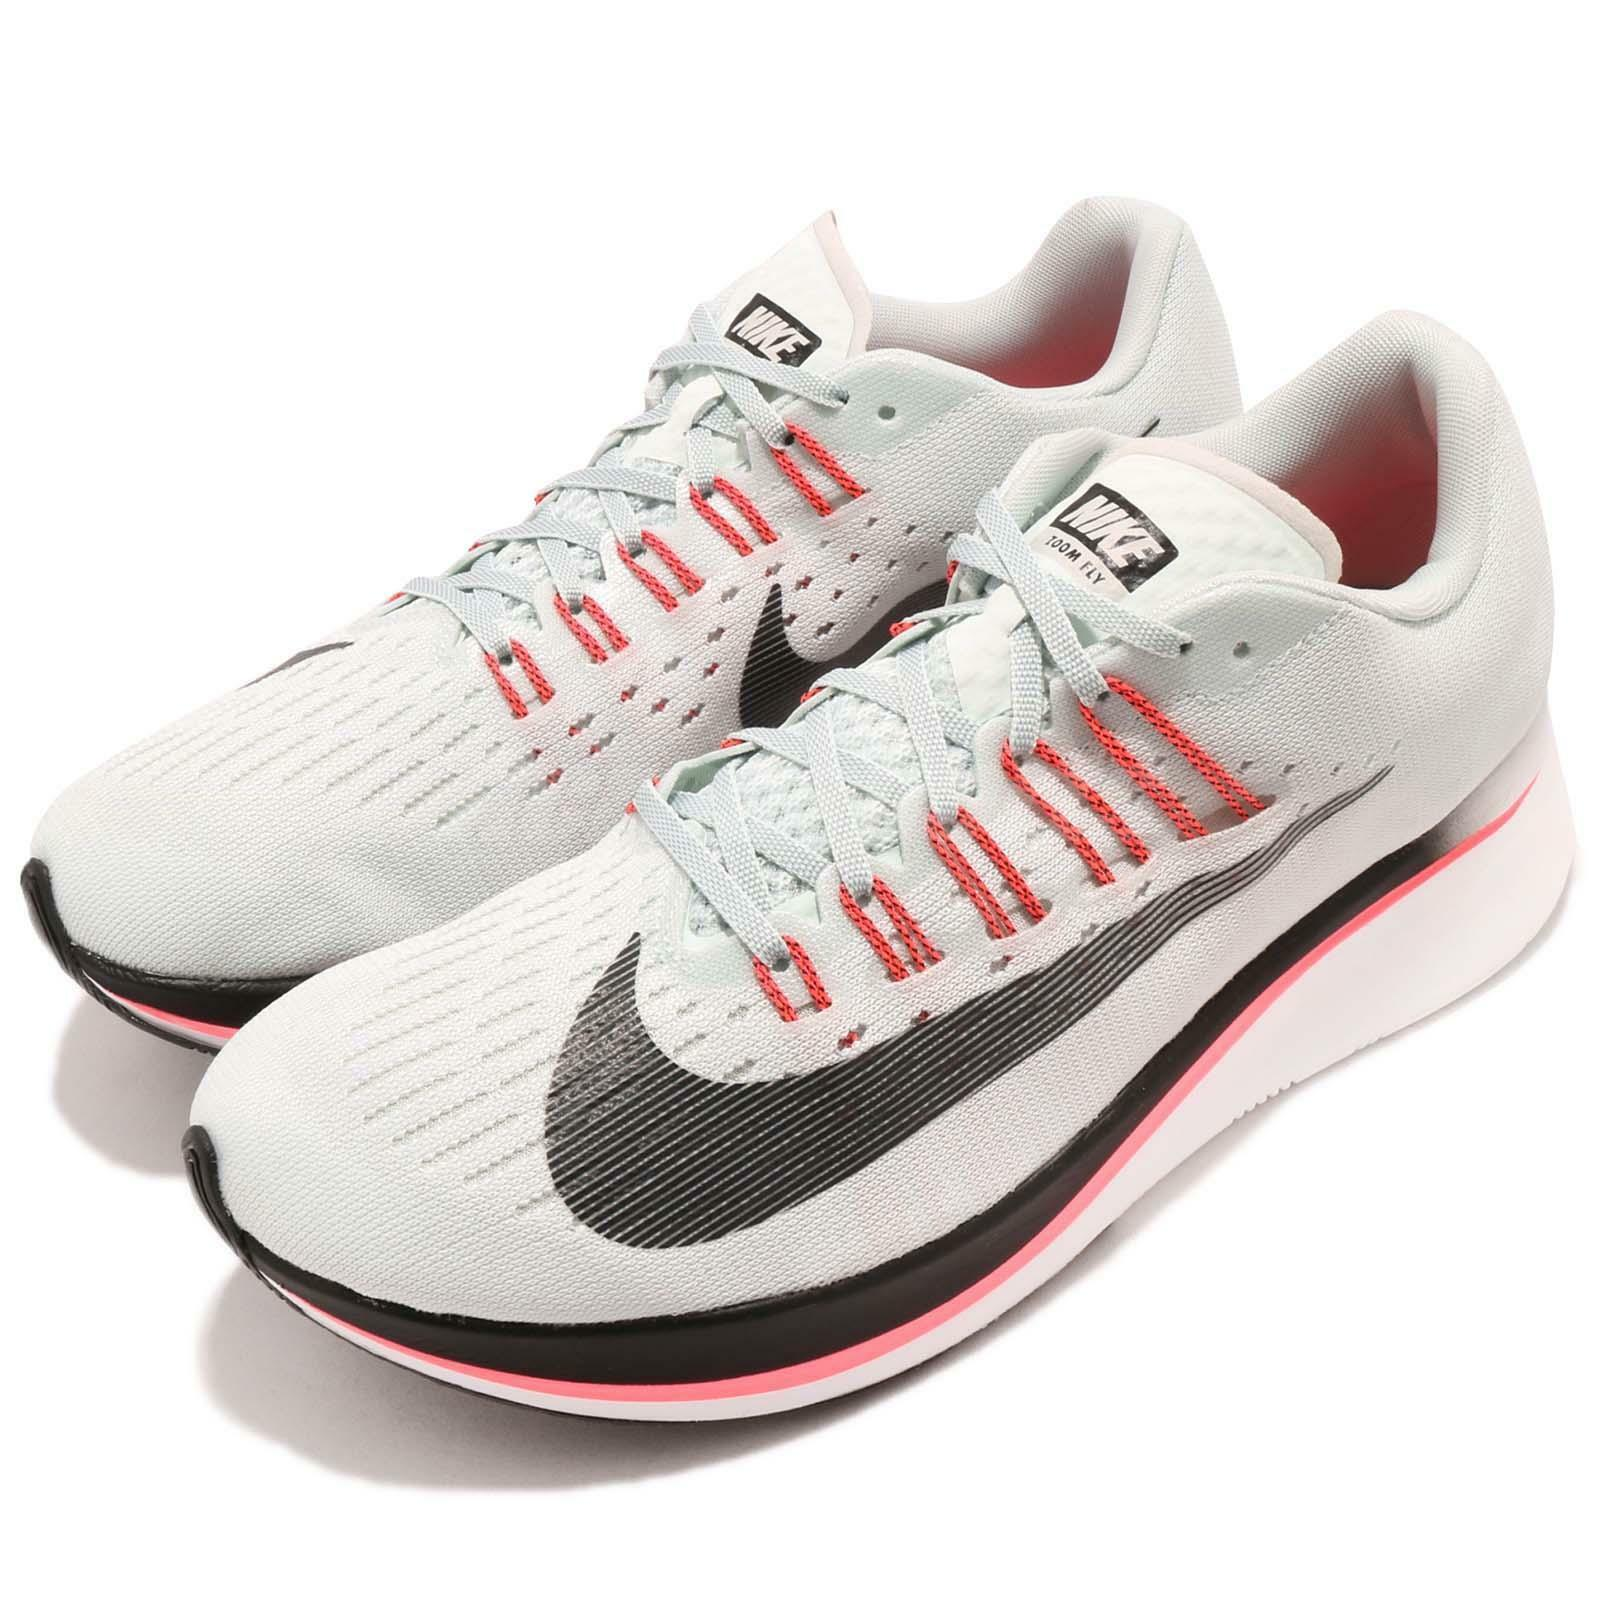 Nike Zoom Fly Barely Grey Hot Punch White Men Running shoes Sneakers 880848-009